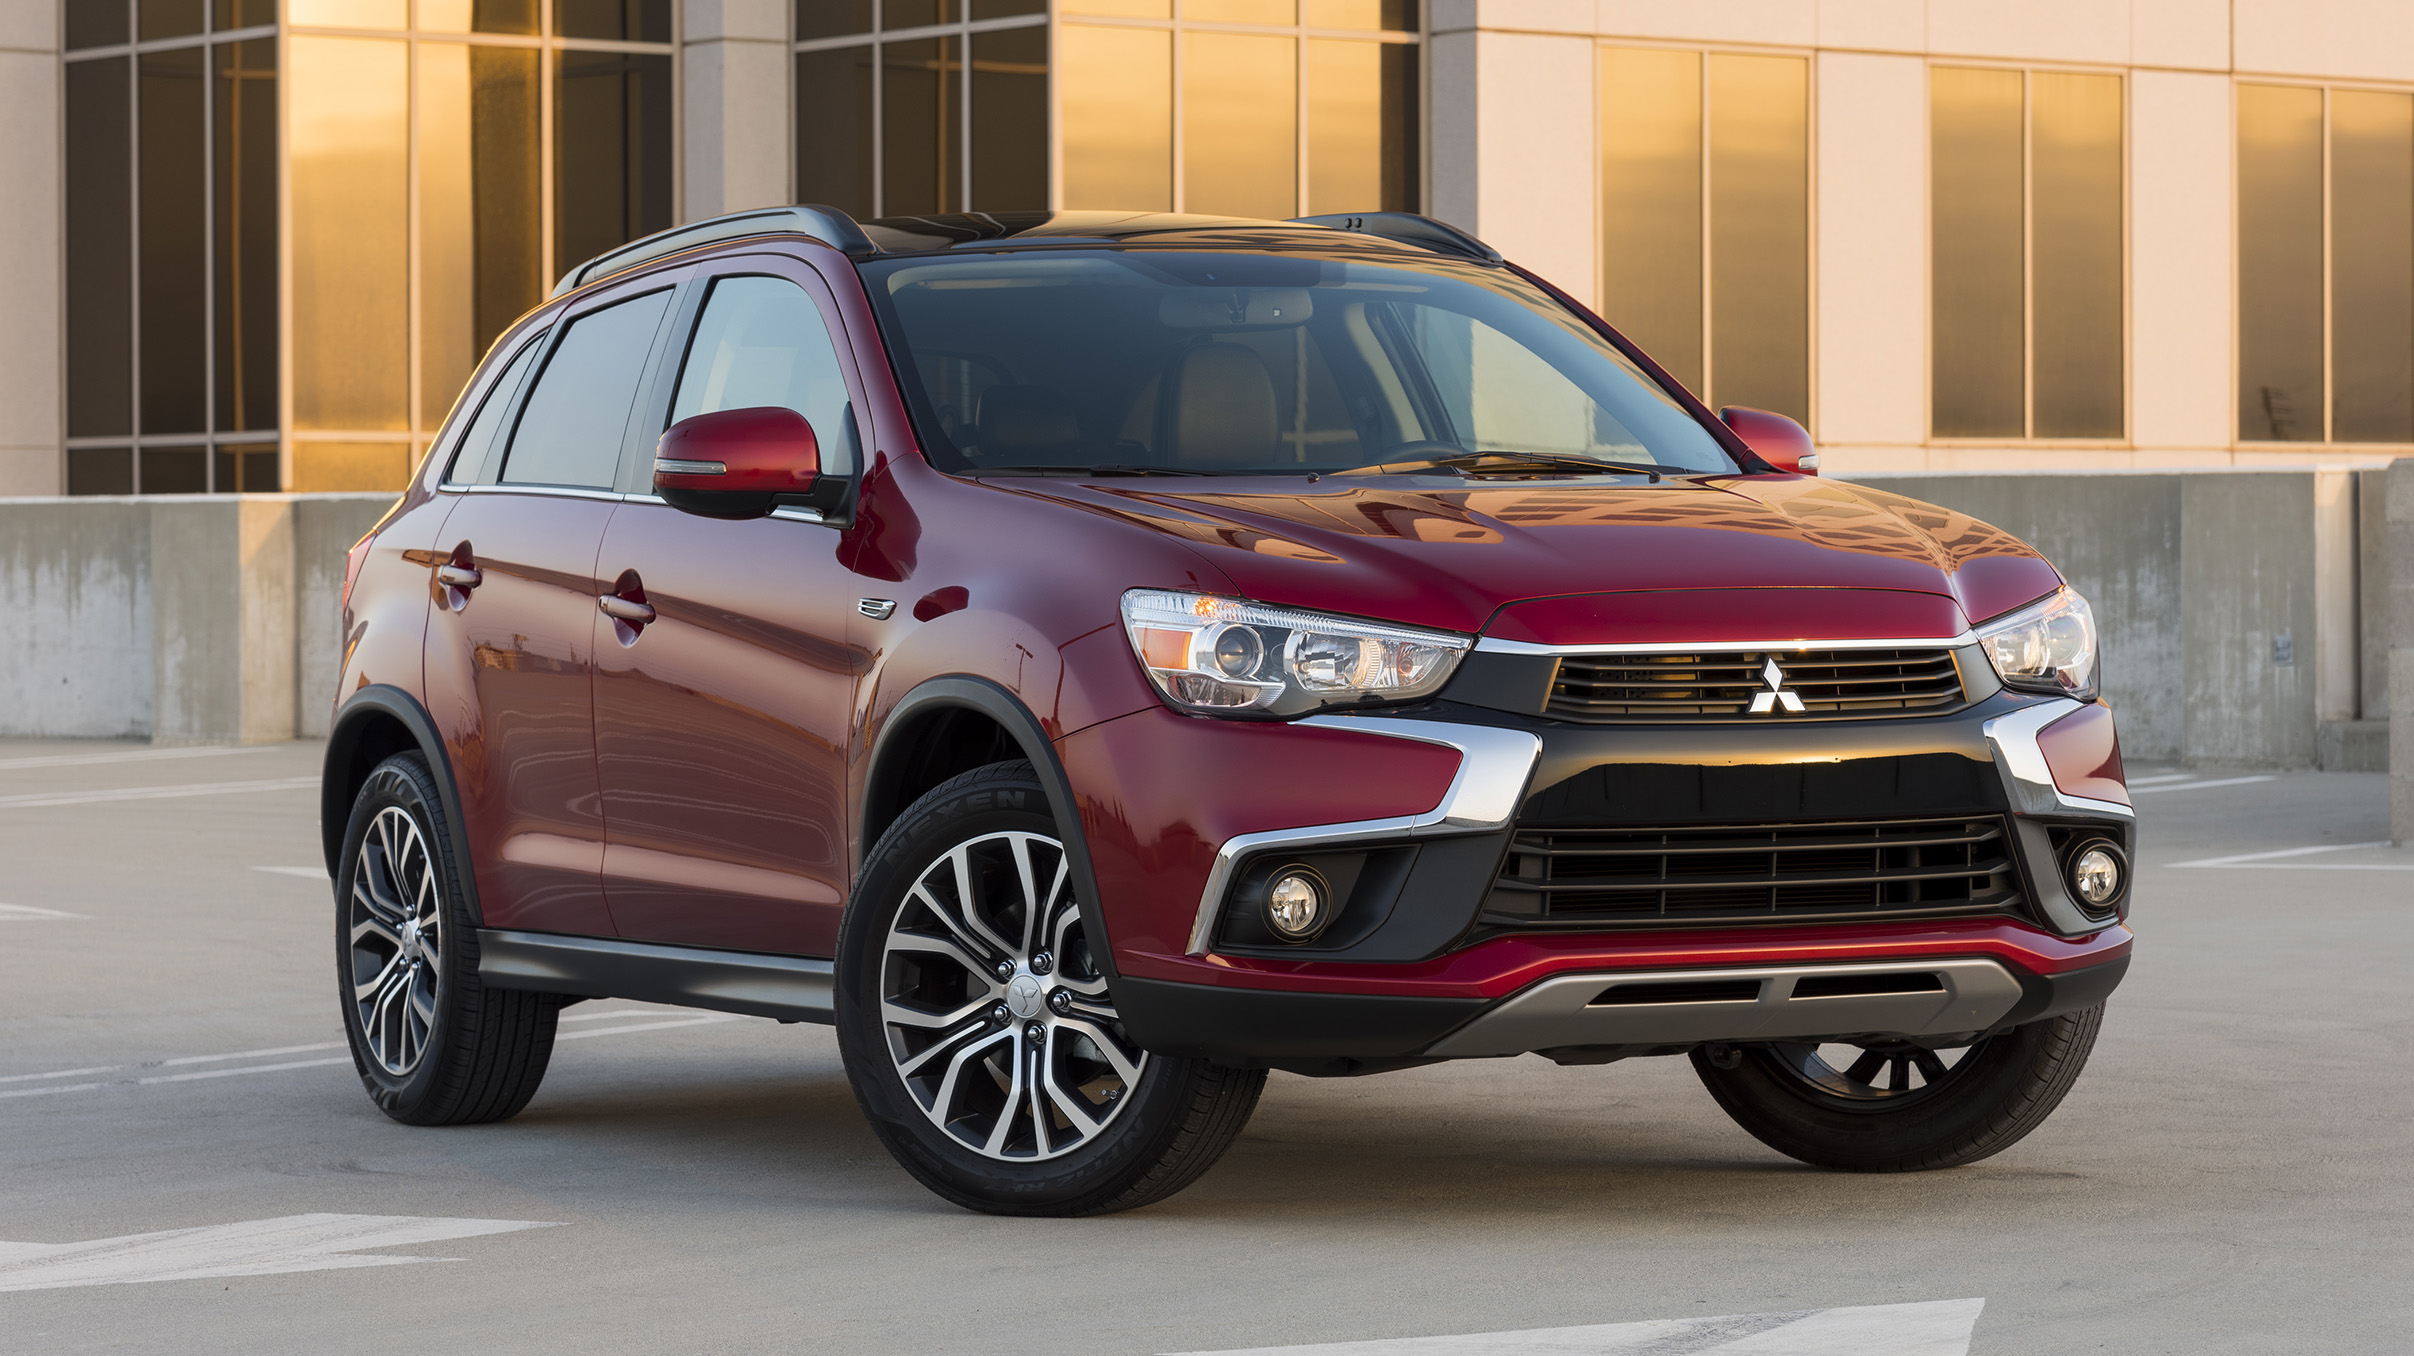 variant shown car ls suv safety review reviews awd andrew chesterton blue outlander carsguide mitsubishi manual pack